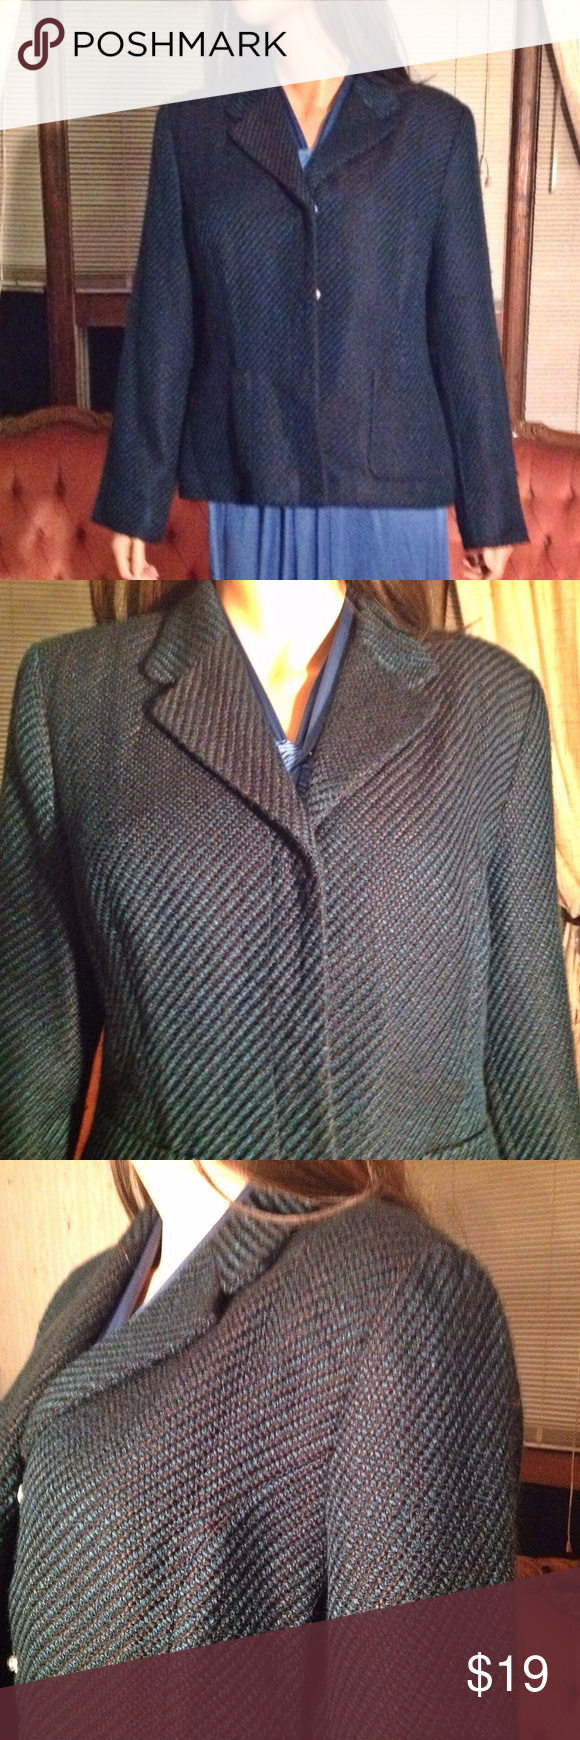 """Jackets For Women, Plaid Women Blazer Black & Blue Colors * Plaid Design Pattern * Length 22.5"""" *  Sleeves 24"""" *  Bust armpit to armpit 22"""" *  Two Front Pockets * Blazer is Lined * Snap Front Closure * Designed by Sag Harbor *  Orders ship within 1 Business Day excluding weekends. Add multiple items to a bundle to get 15% off, plus you'll save on shipping. Thanks For Shopping with Dress To Impress Thrift & Boutique.  Have A Great Day Sag Harbor Jackets & Coats Blazers"""